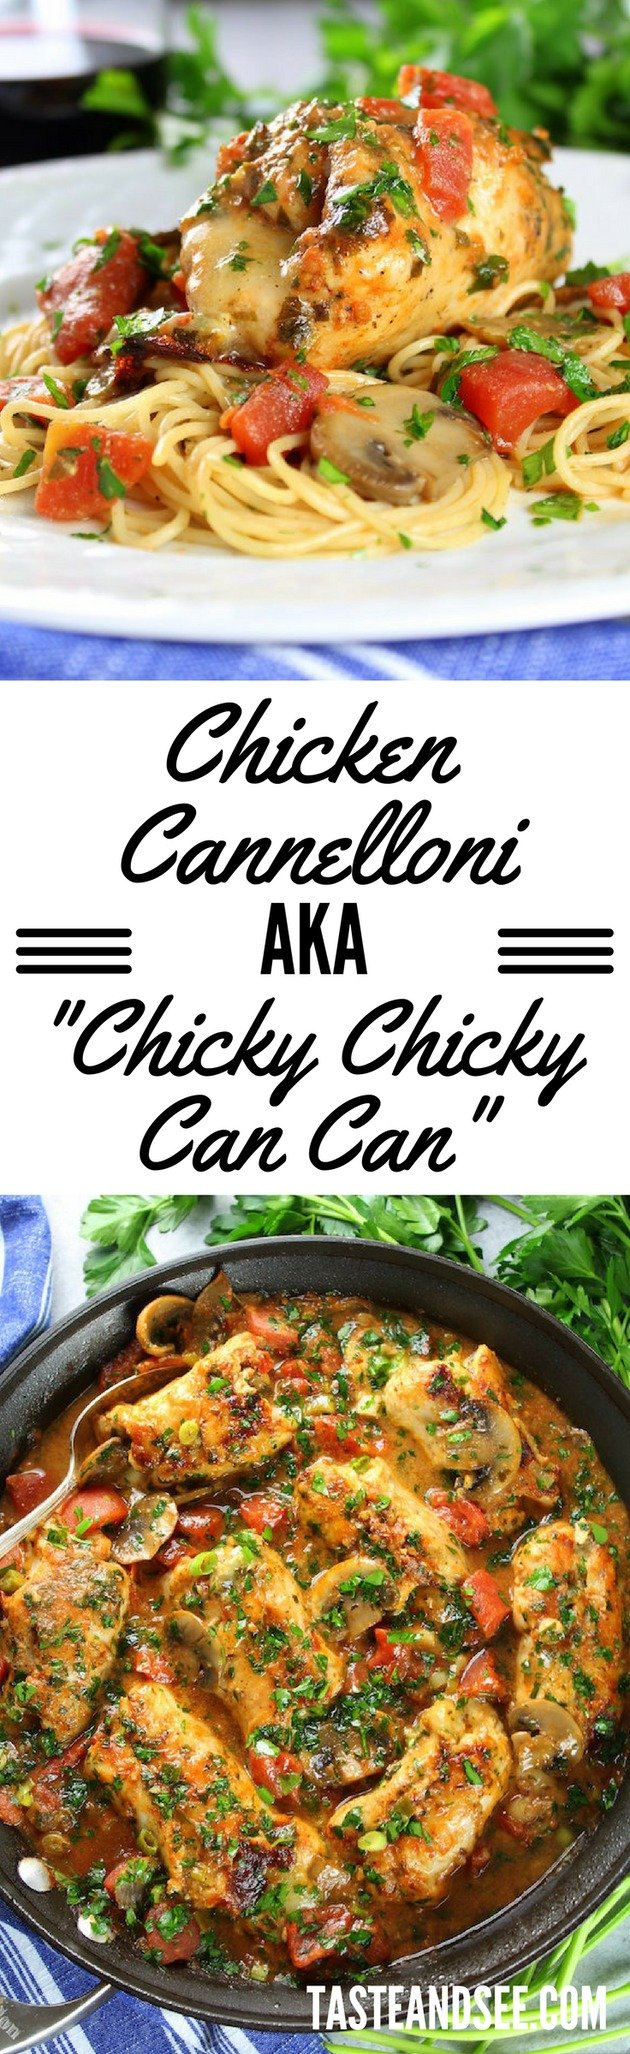 Chicken Cannelloni is an unbelievably easy & delicious Italian chicken weeknight dinner. #chicken #30Minute #Dinner #tasteandsee || https://tasteandsee.com ||